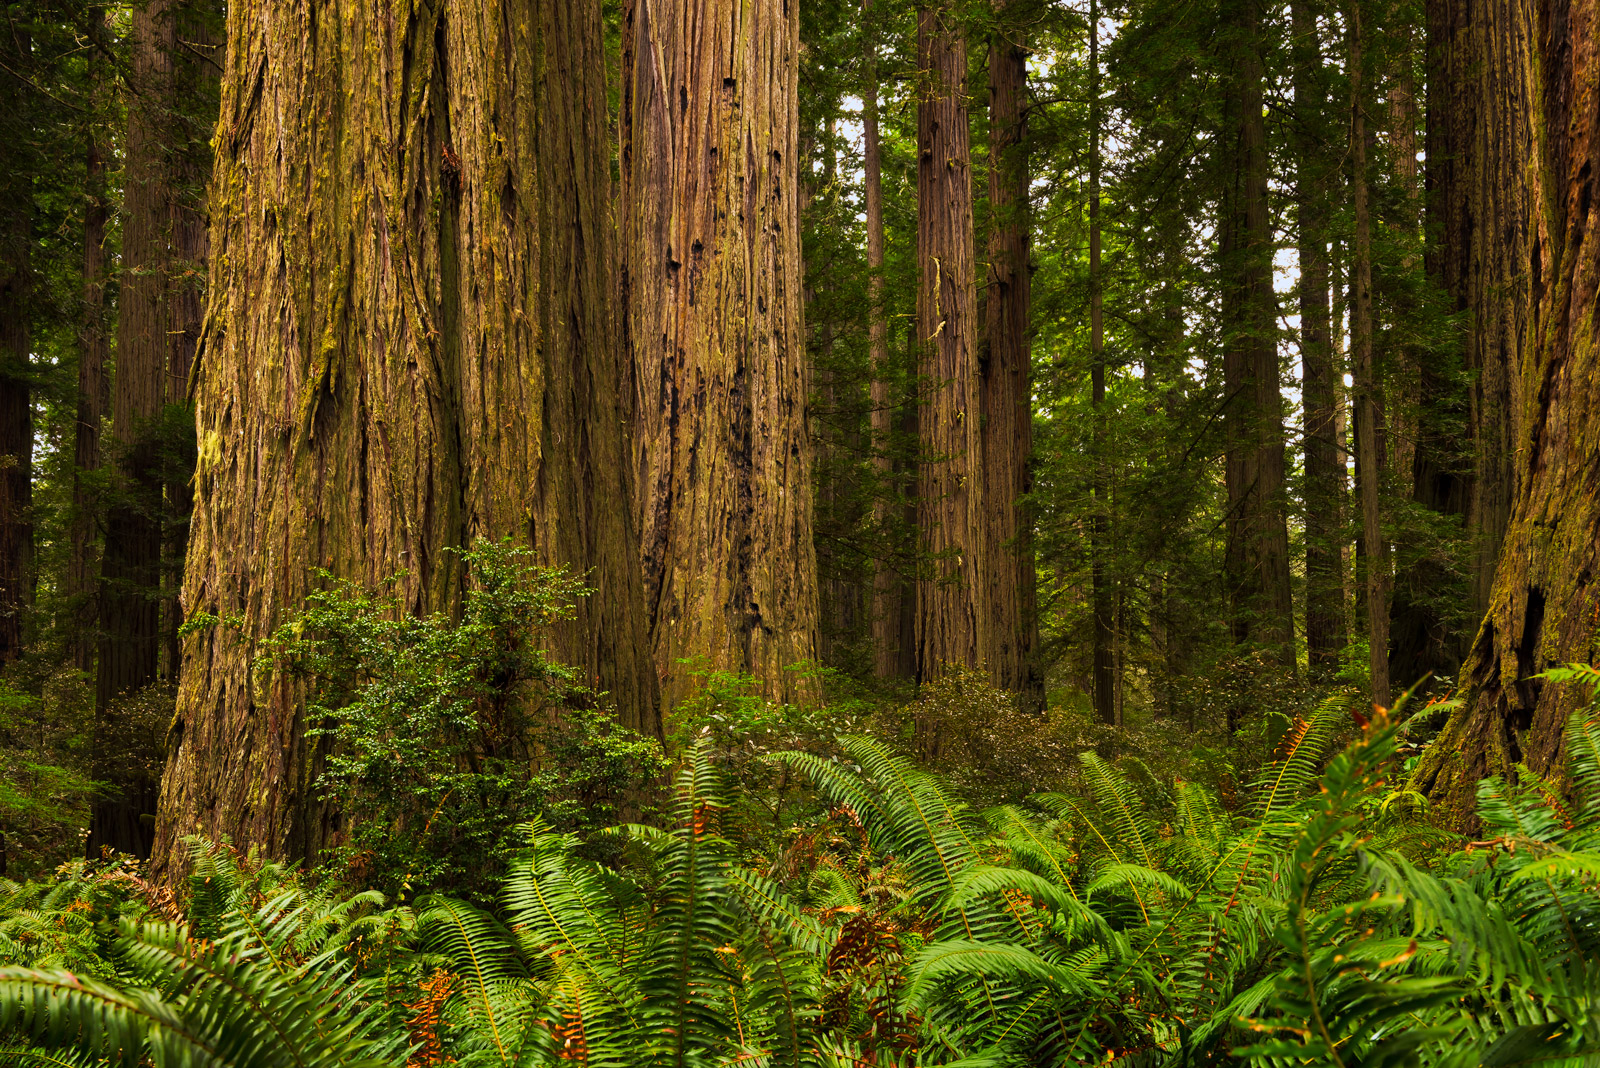 A Limited Edition, Fine Art photograph of the base of a mighty redwood tree surrounded by lush green foliage with ferns in Redwood...